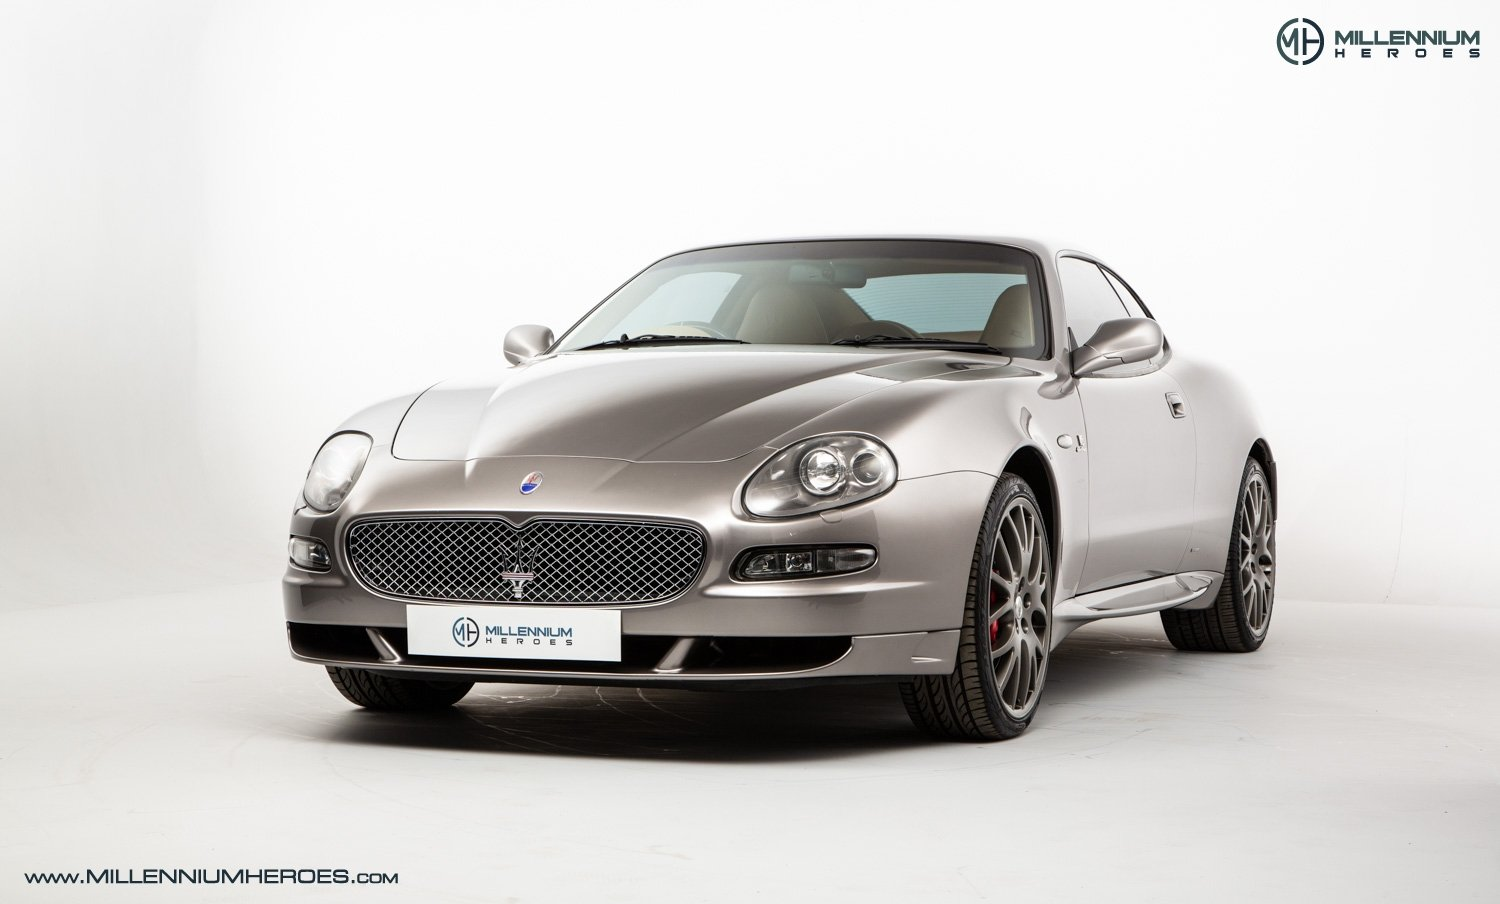 2006 MASERATI COUPE V8 GRANSPORT LE // 44K MILES //  1 OF 107 For Sale (picture 1 of 22)